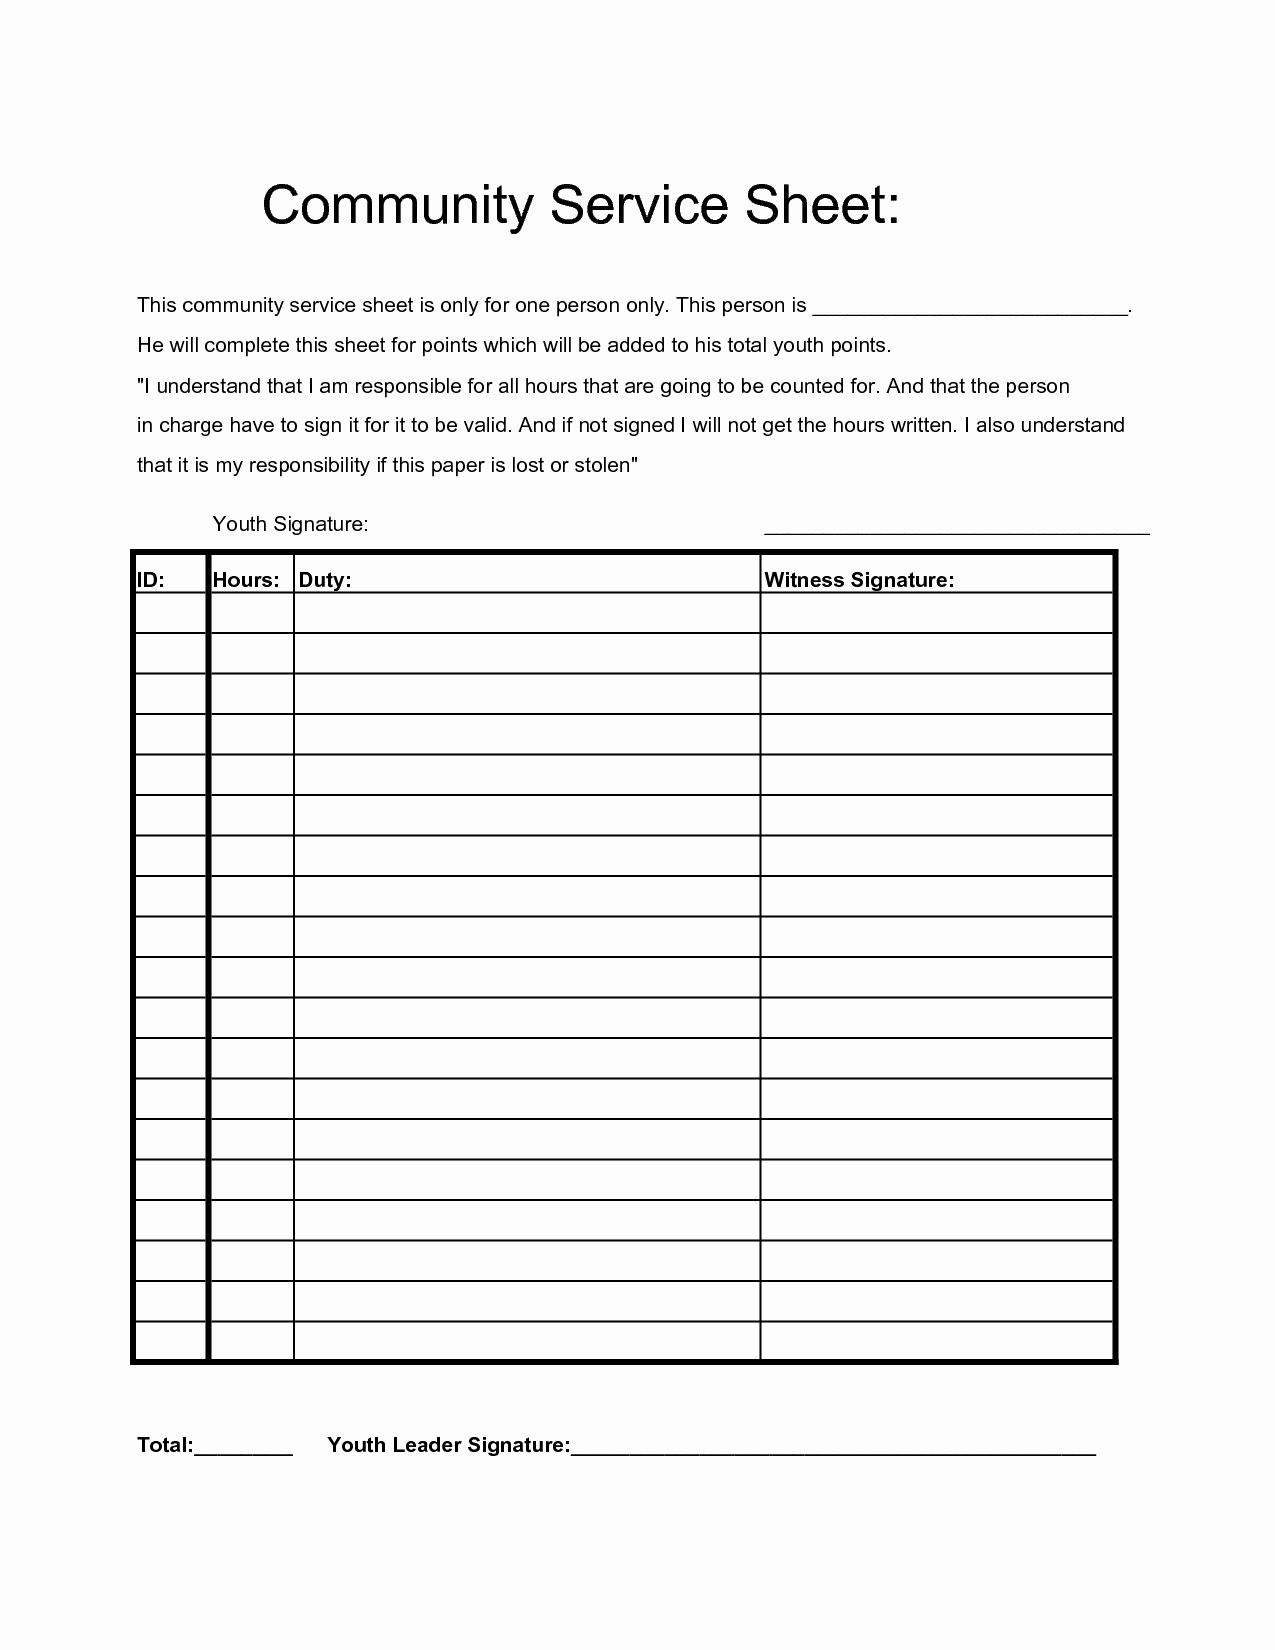 Community Service form Template New Munity Service Hours Sheet